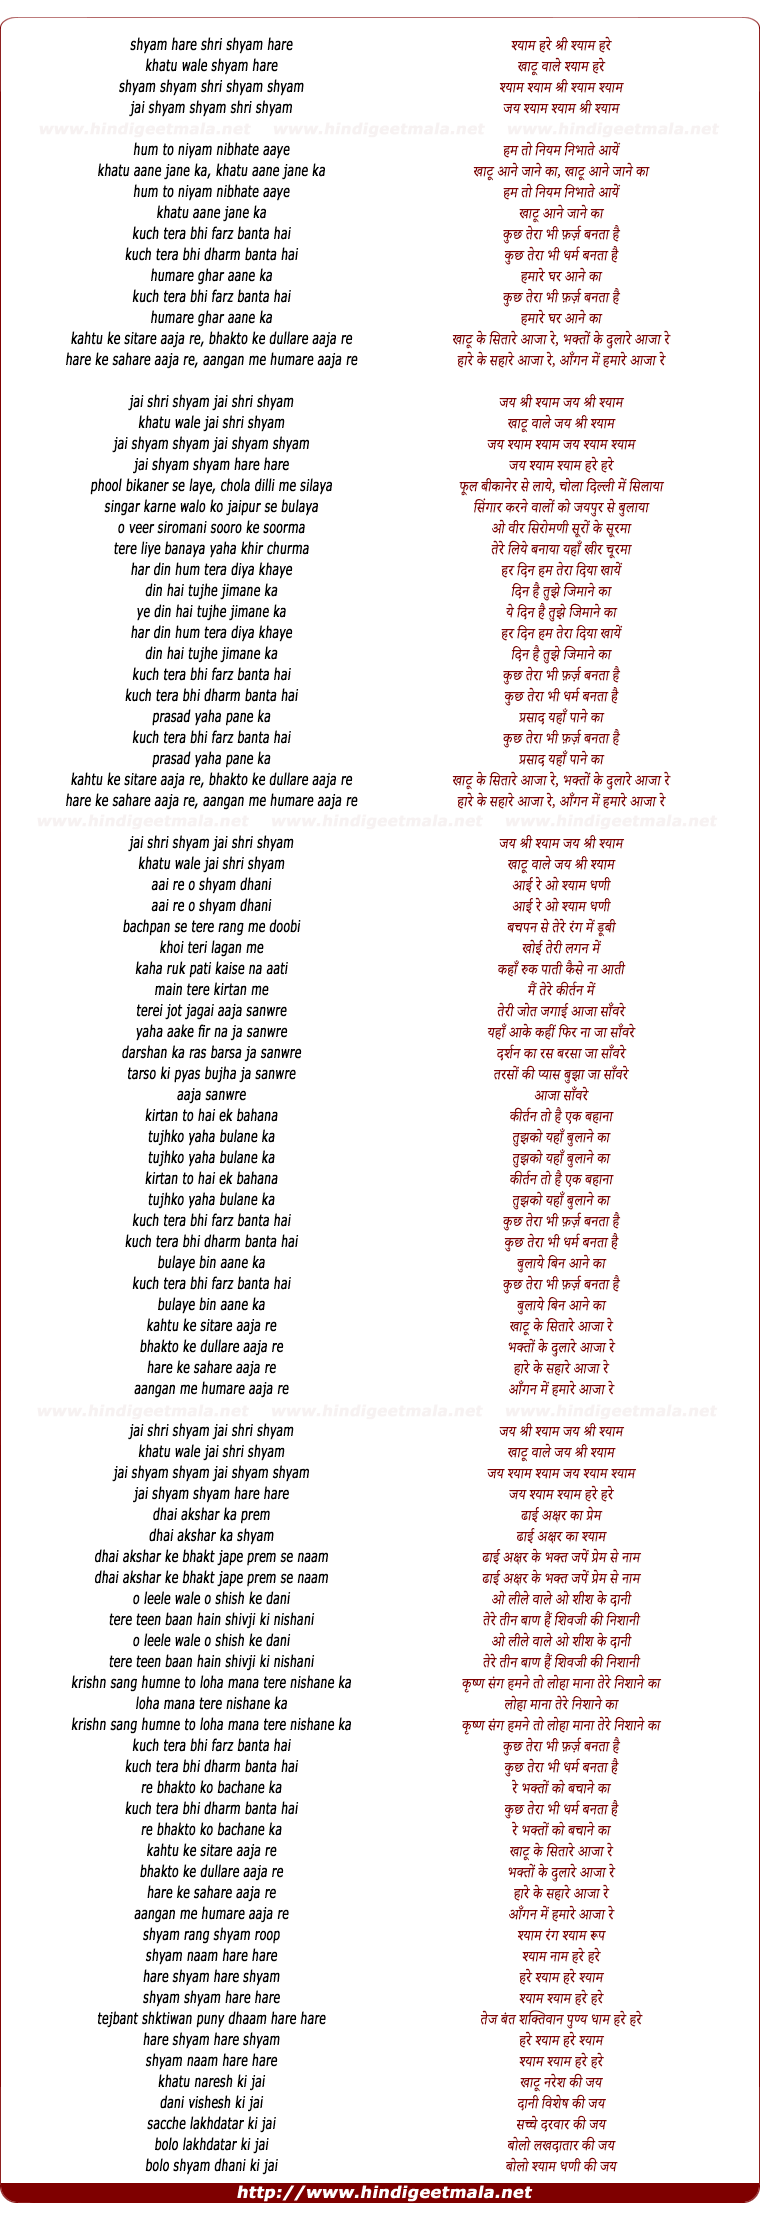 lyrics of song Hum To Niyam Nibhate Aaye